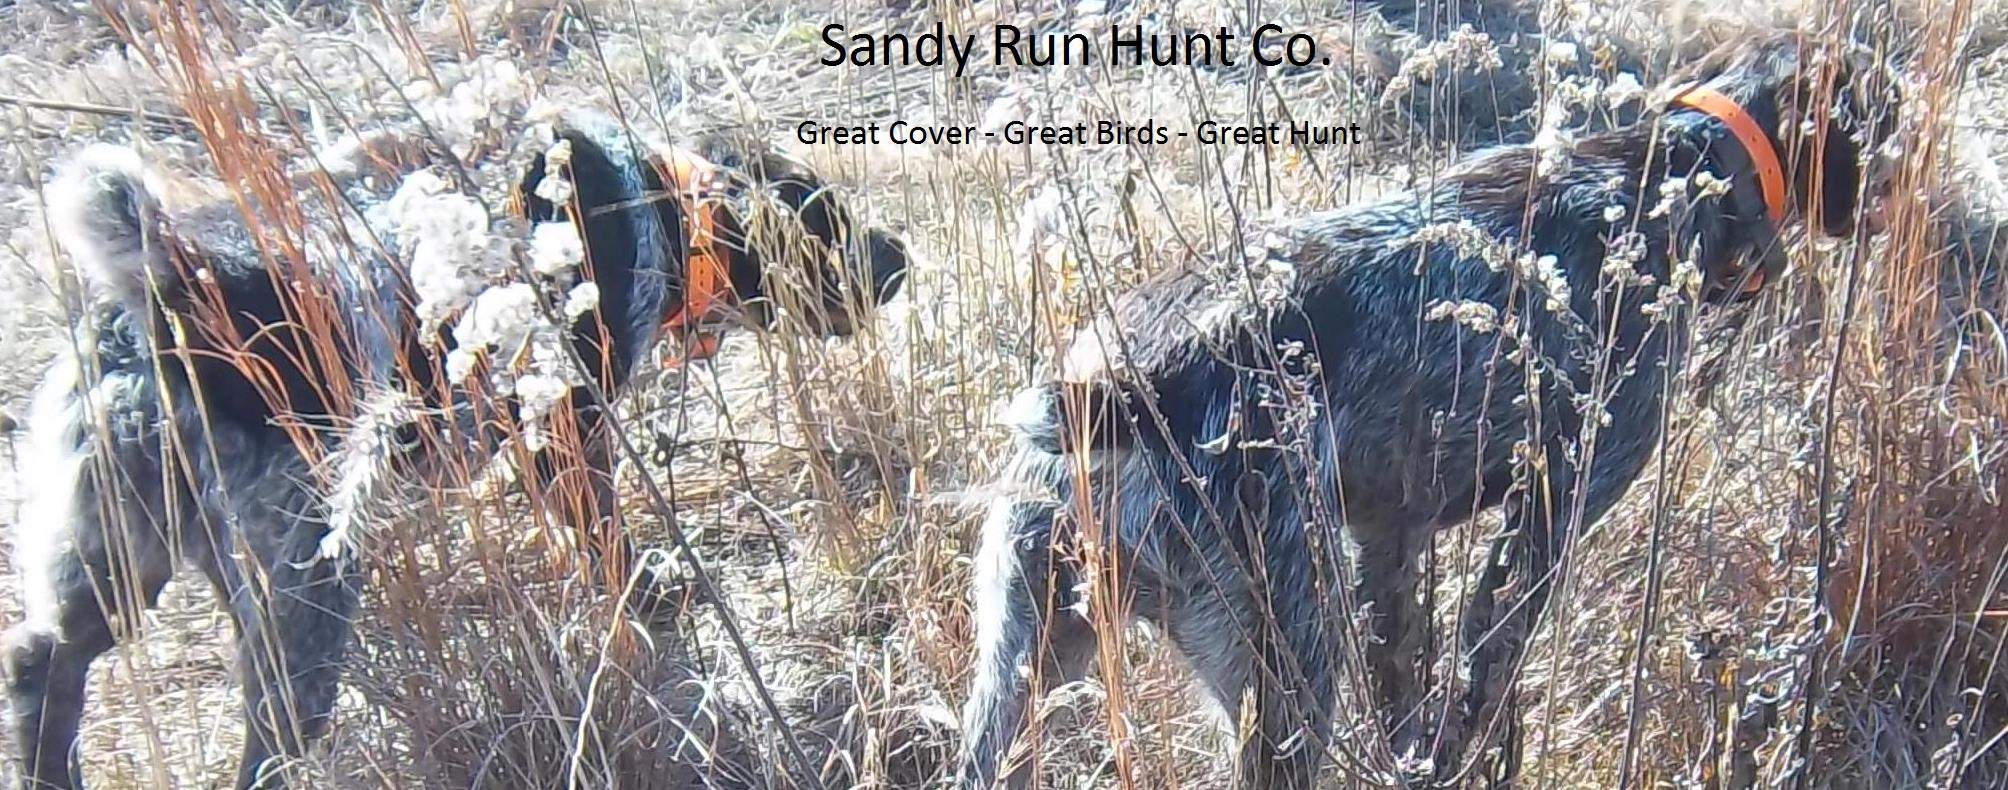 Sandy Run Hunt Co.